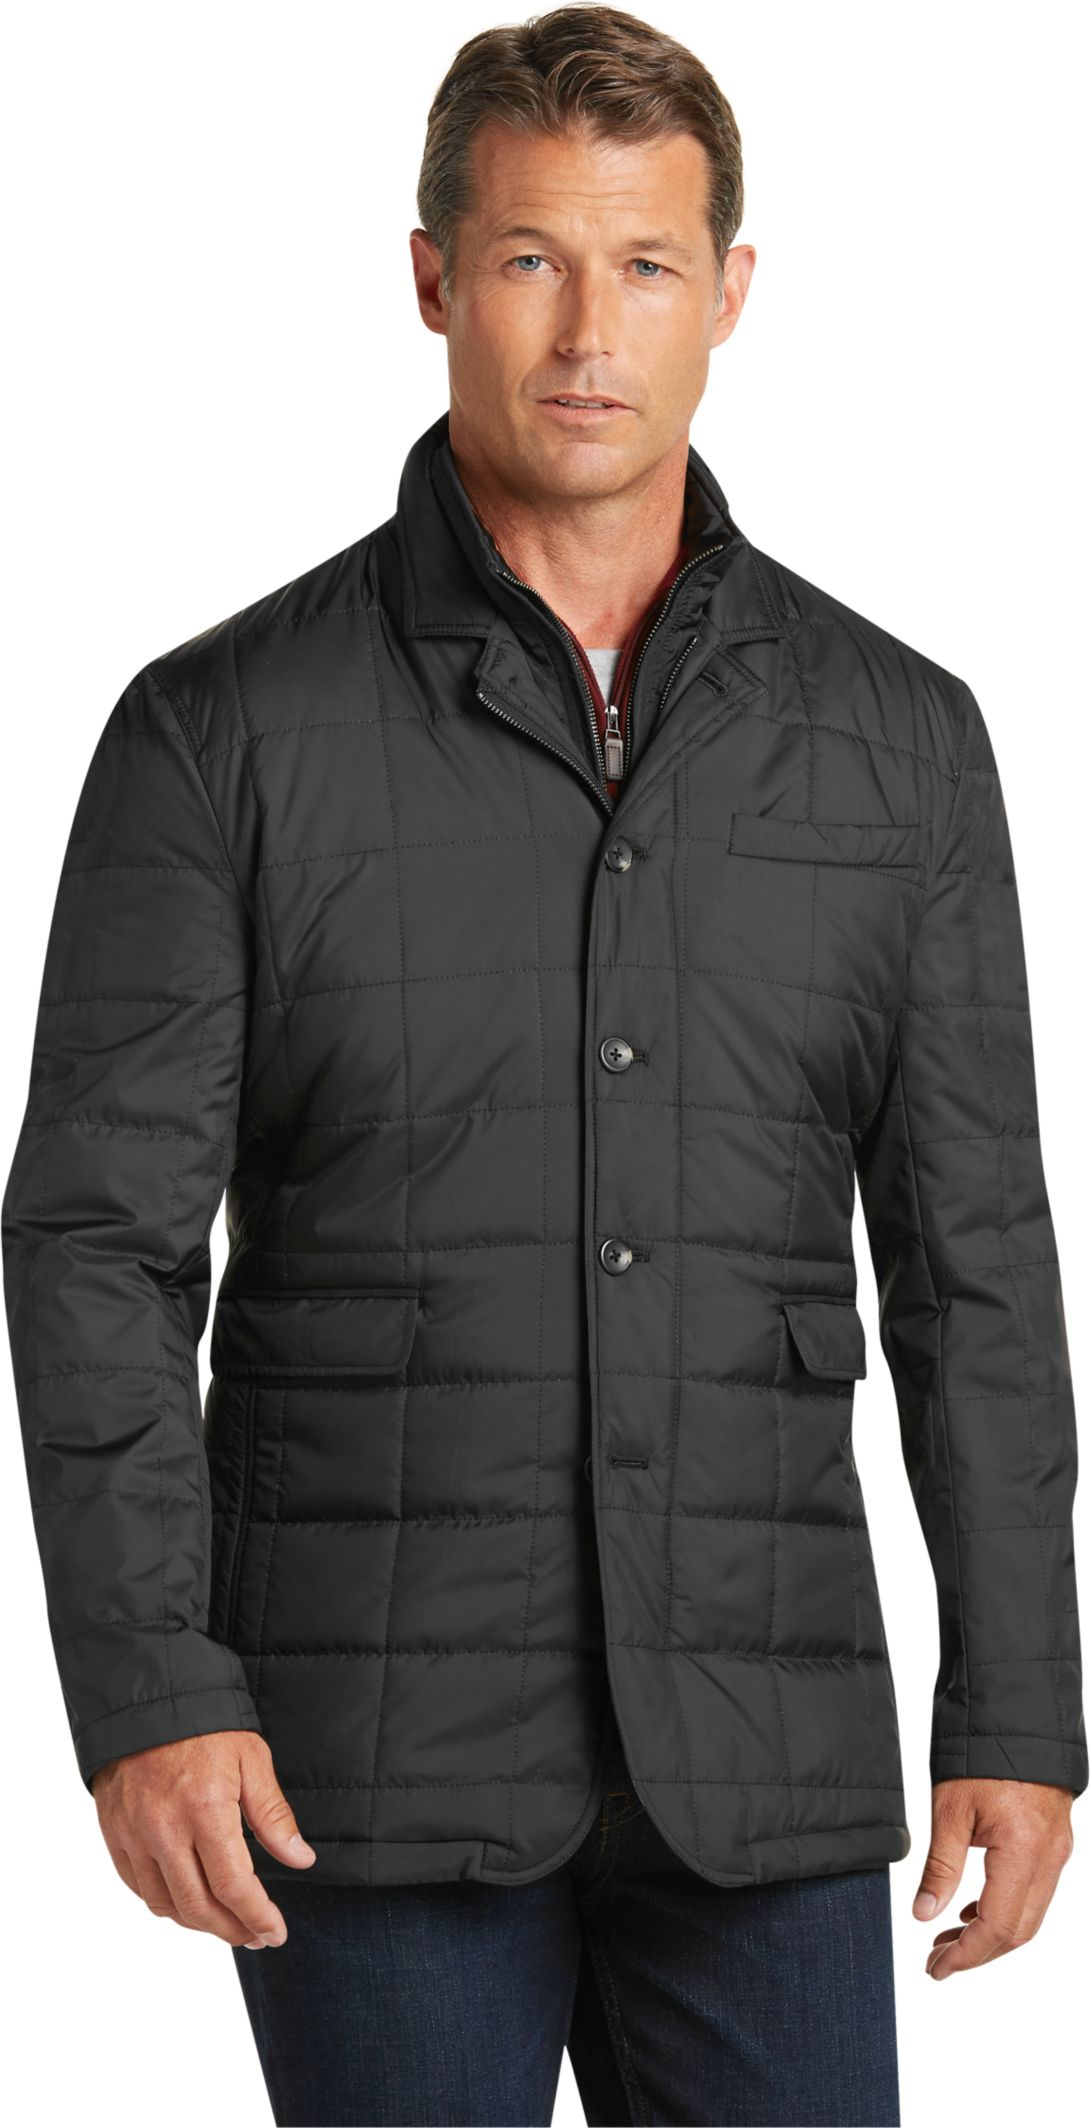 Mens Outerwear | Abercrombie & Fitch